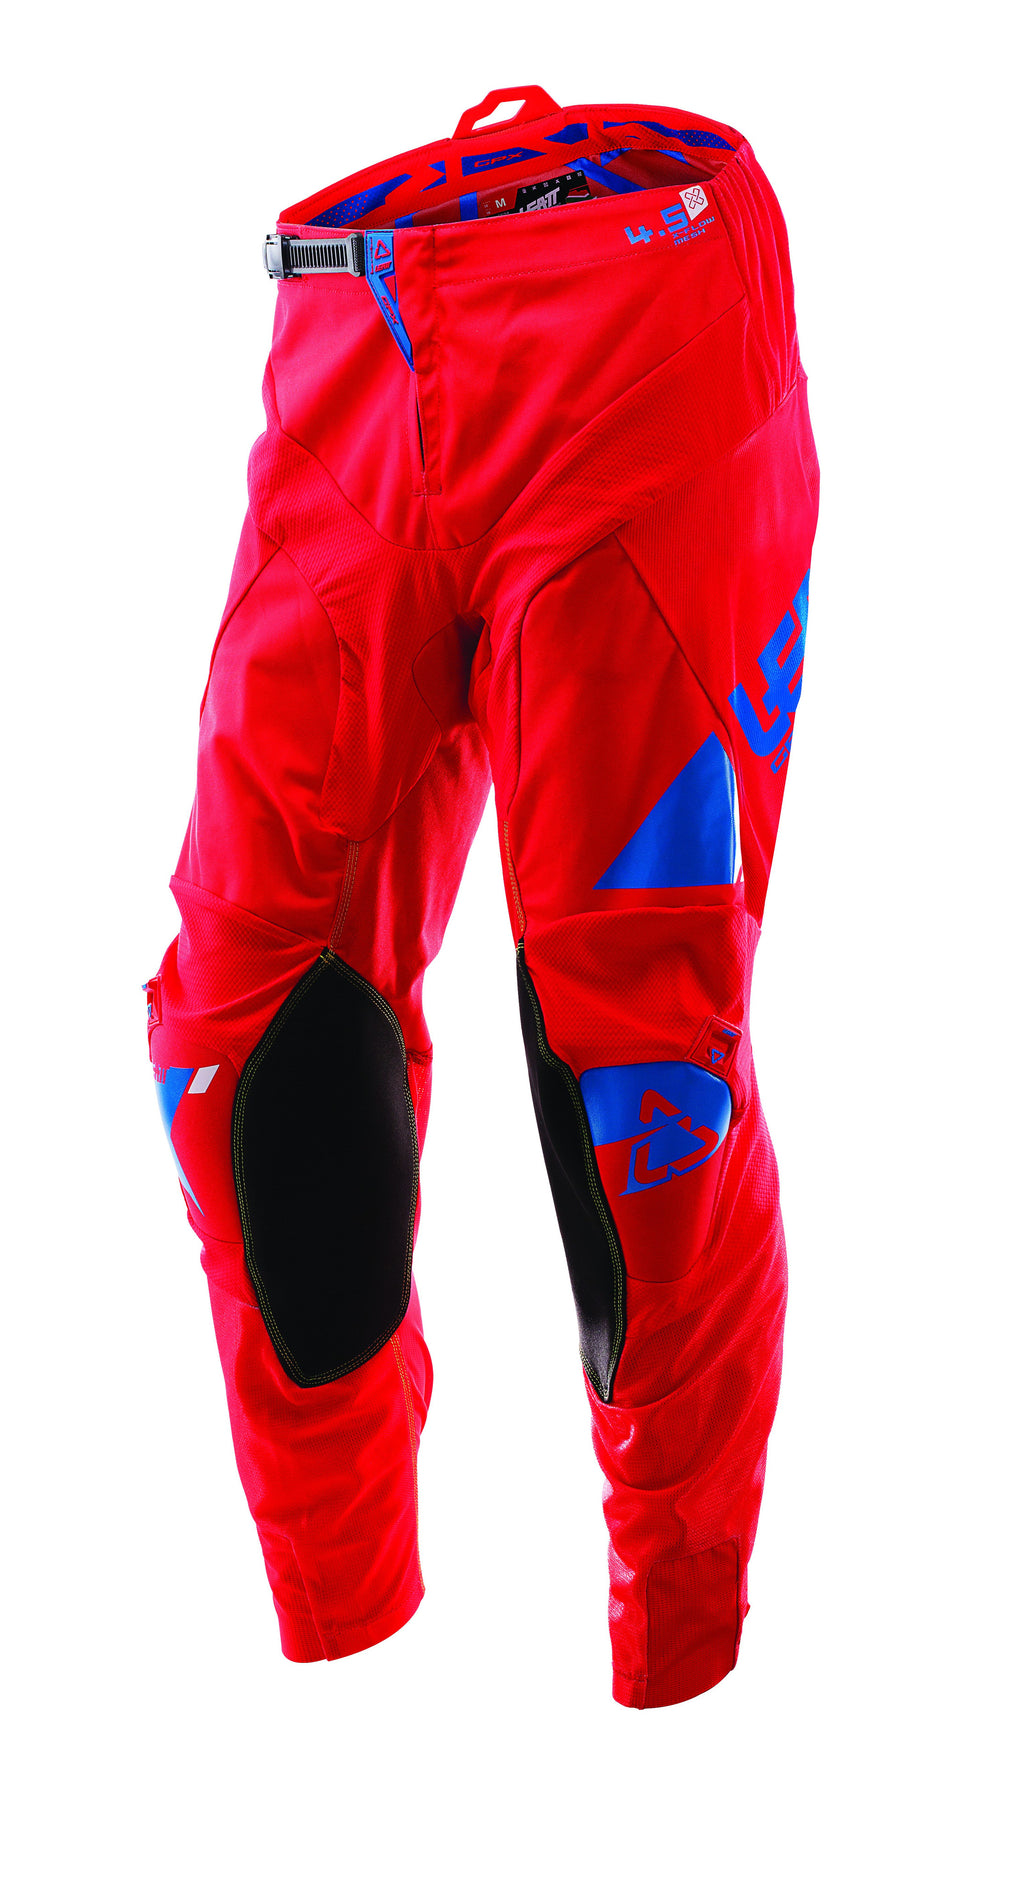 2017 Pant Gpx 4.5 Lite Red Blue